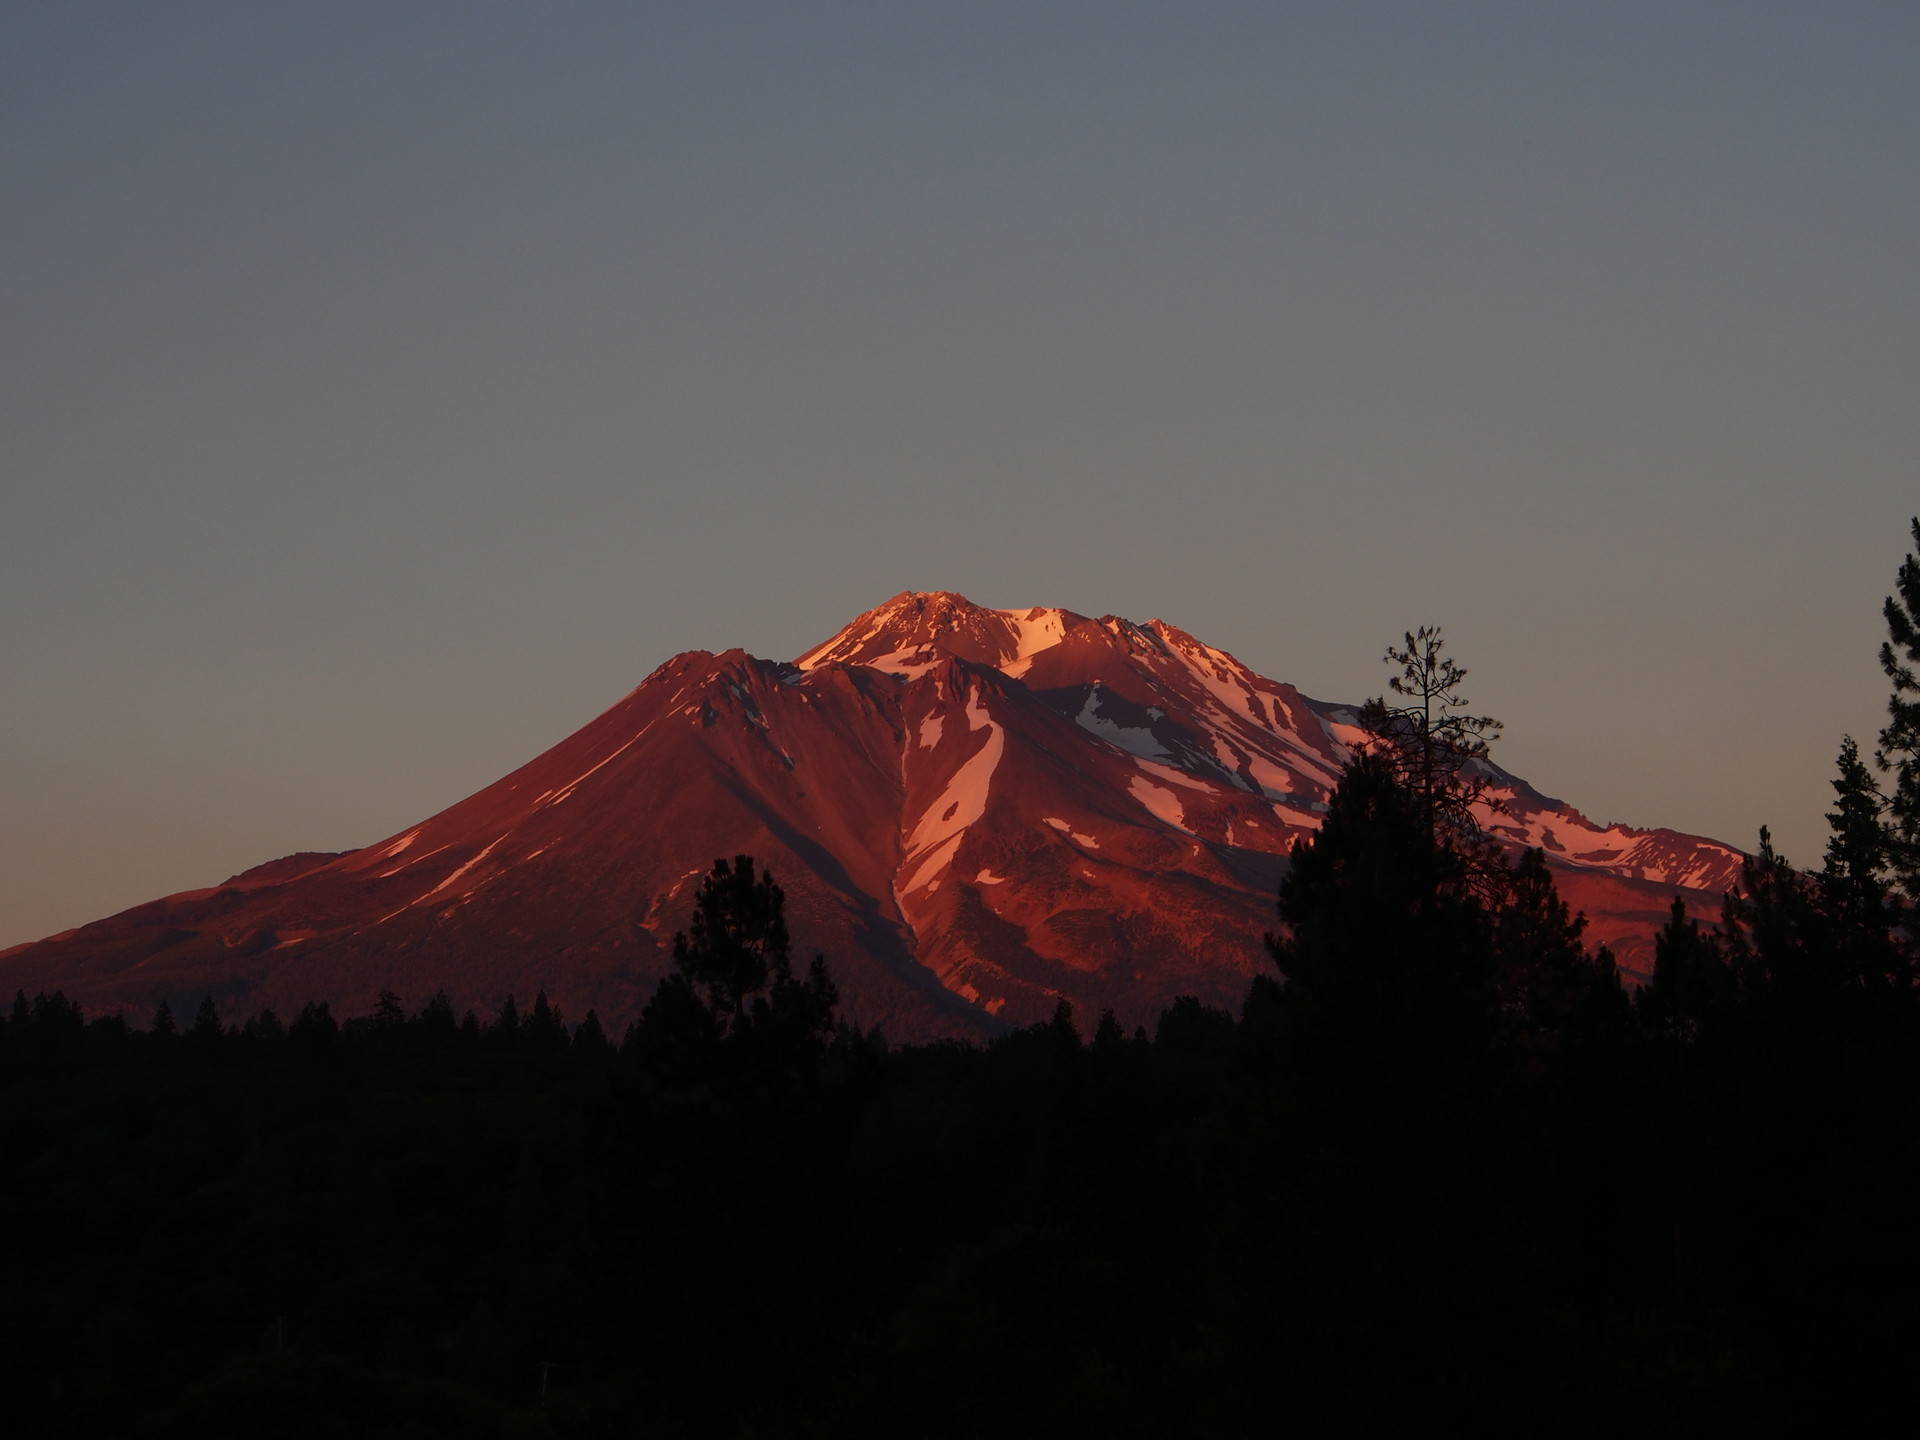 Mt. Shasta is California's highest volcano, and it towers above the surrounding landscape. Cat Schuknecht/KQED